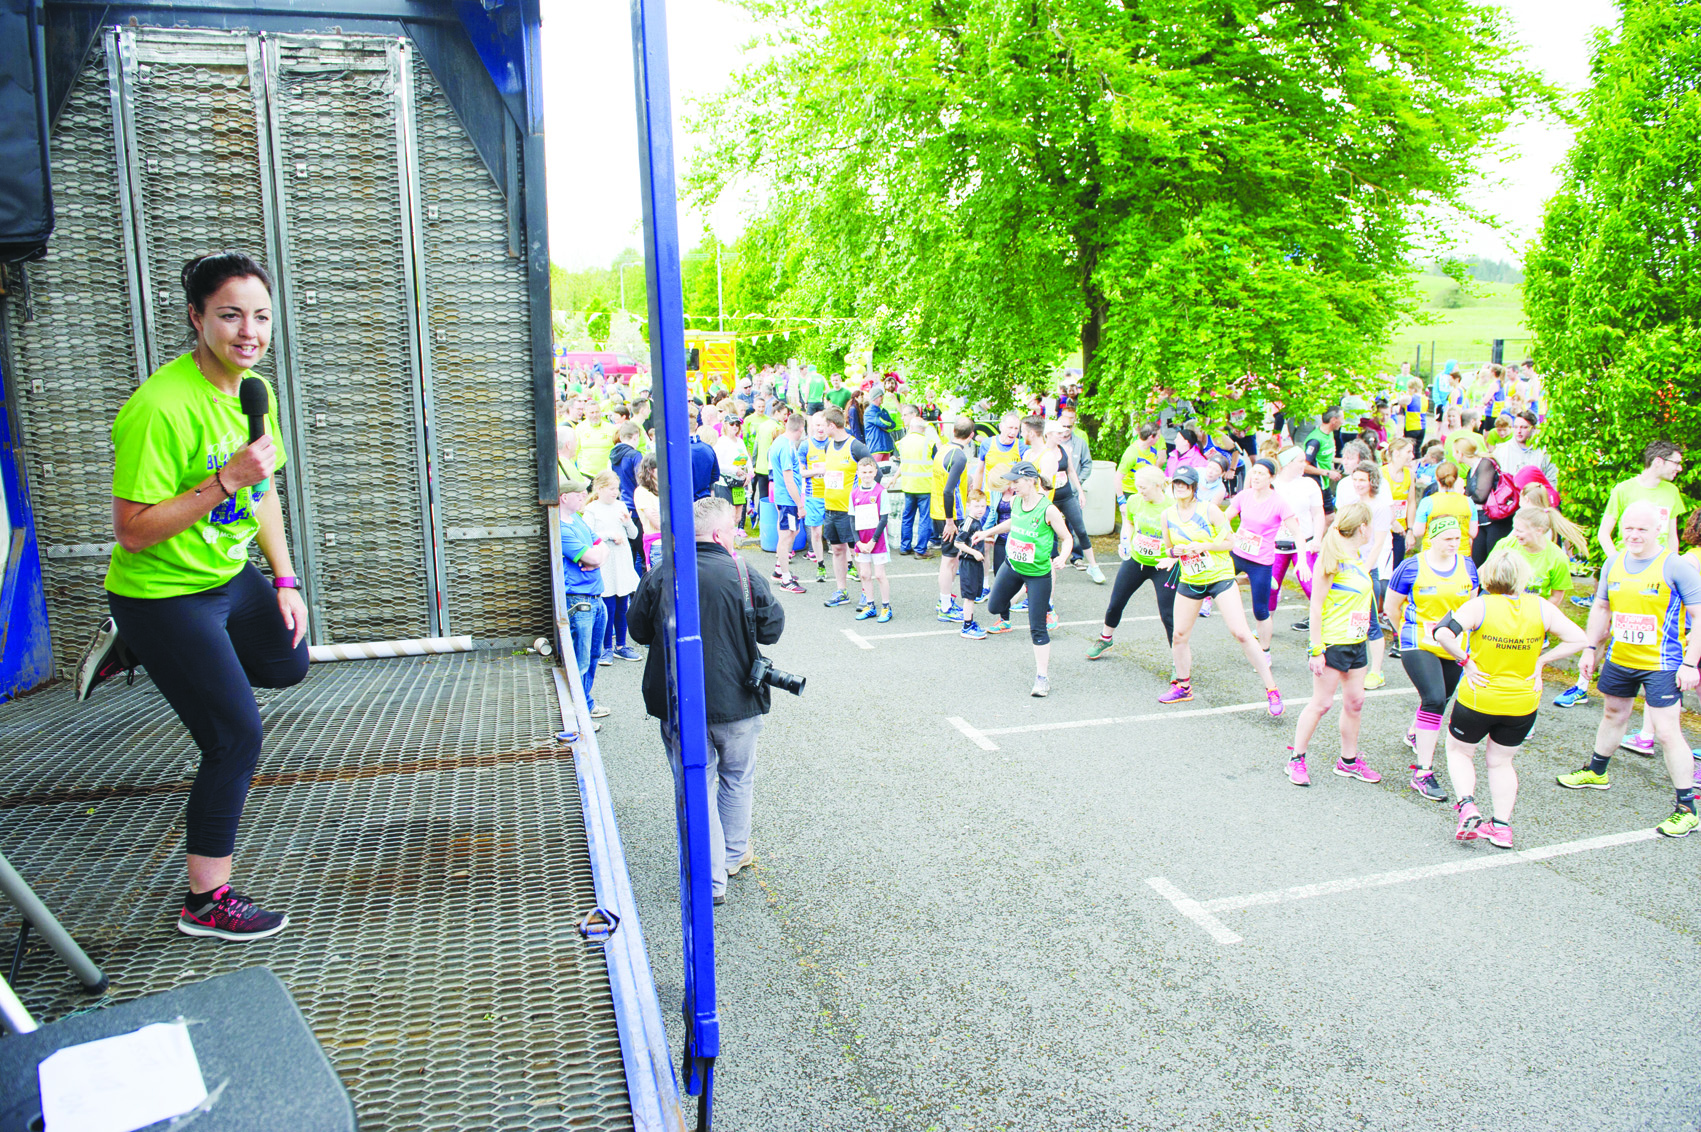 Christine McMahon getting the runners warmed up for the Blackwater 10k. ©Rory Geary/The Northern Standard